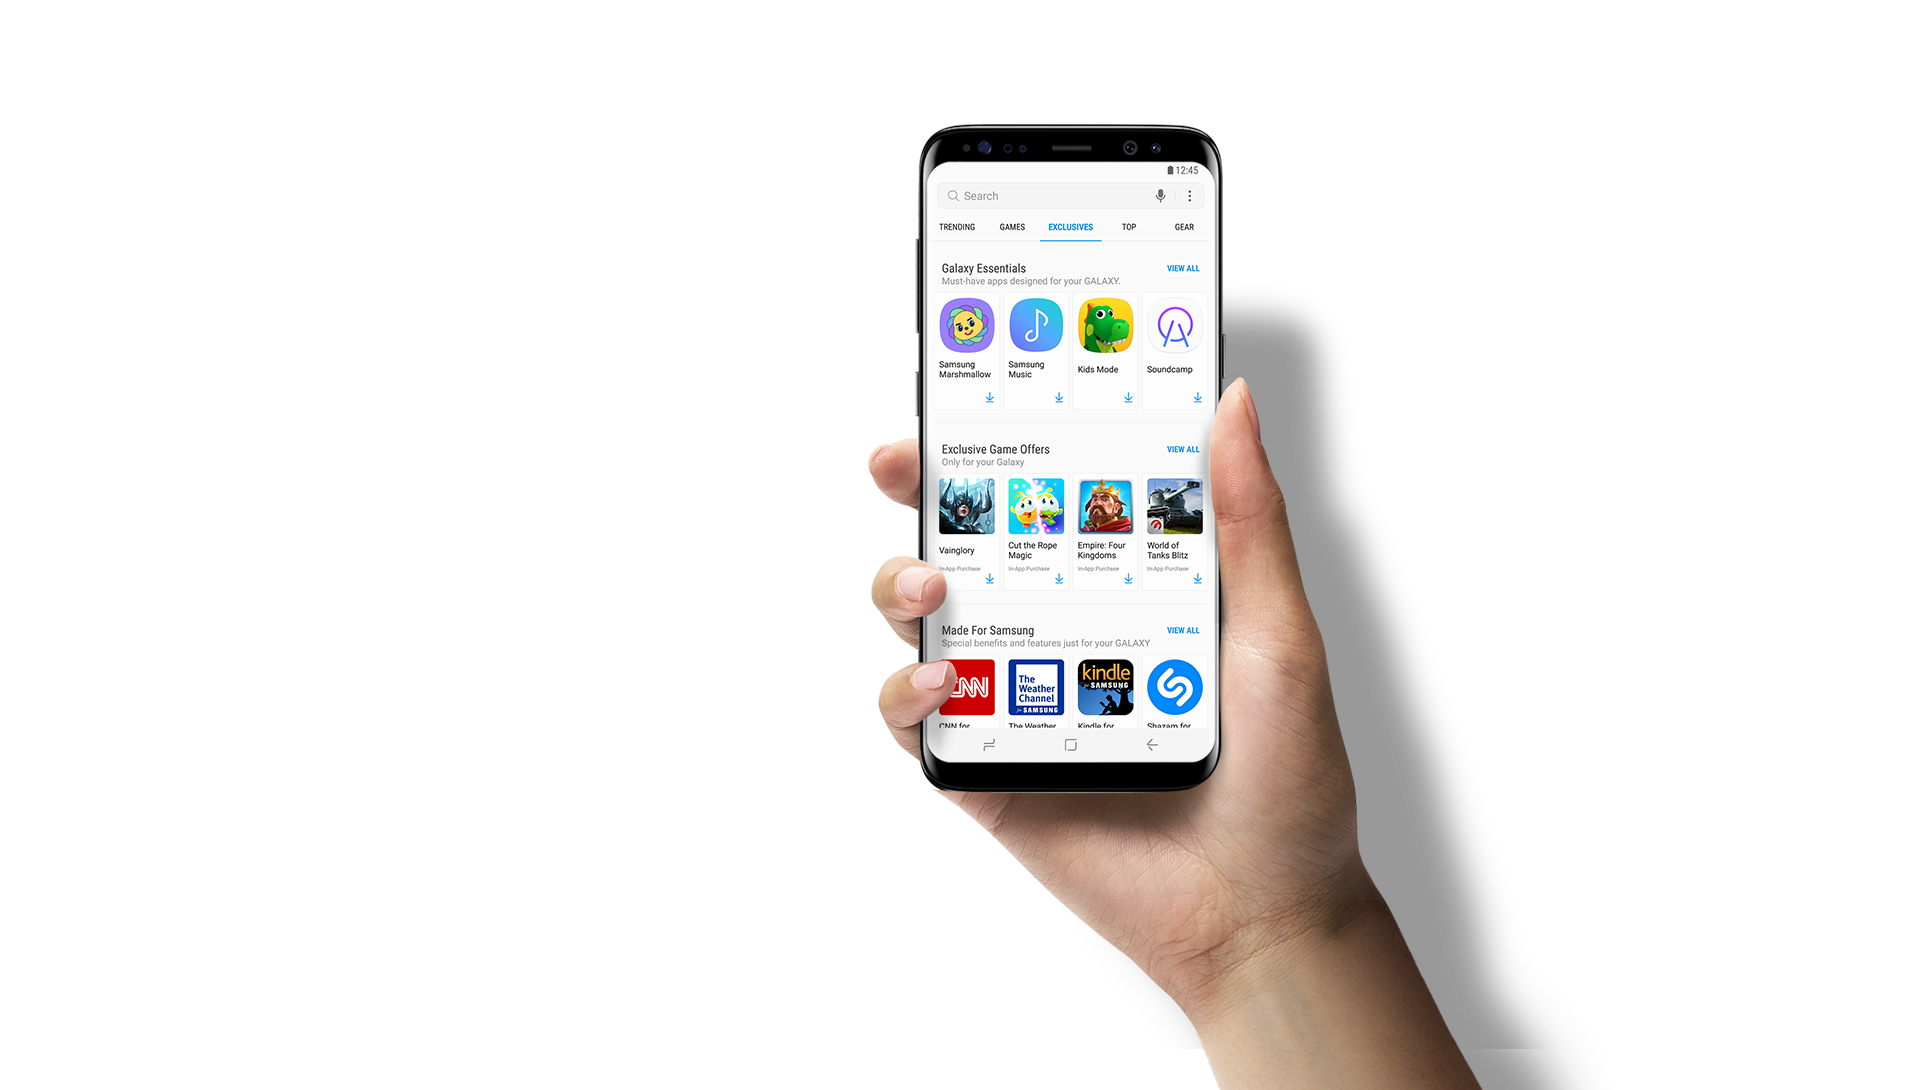 Samsung drawing note 8. Galaxy apps australia get